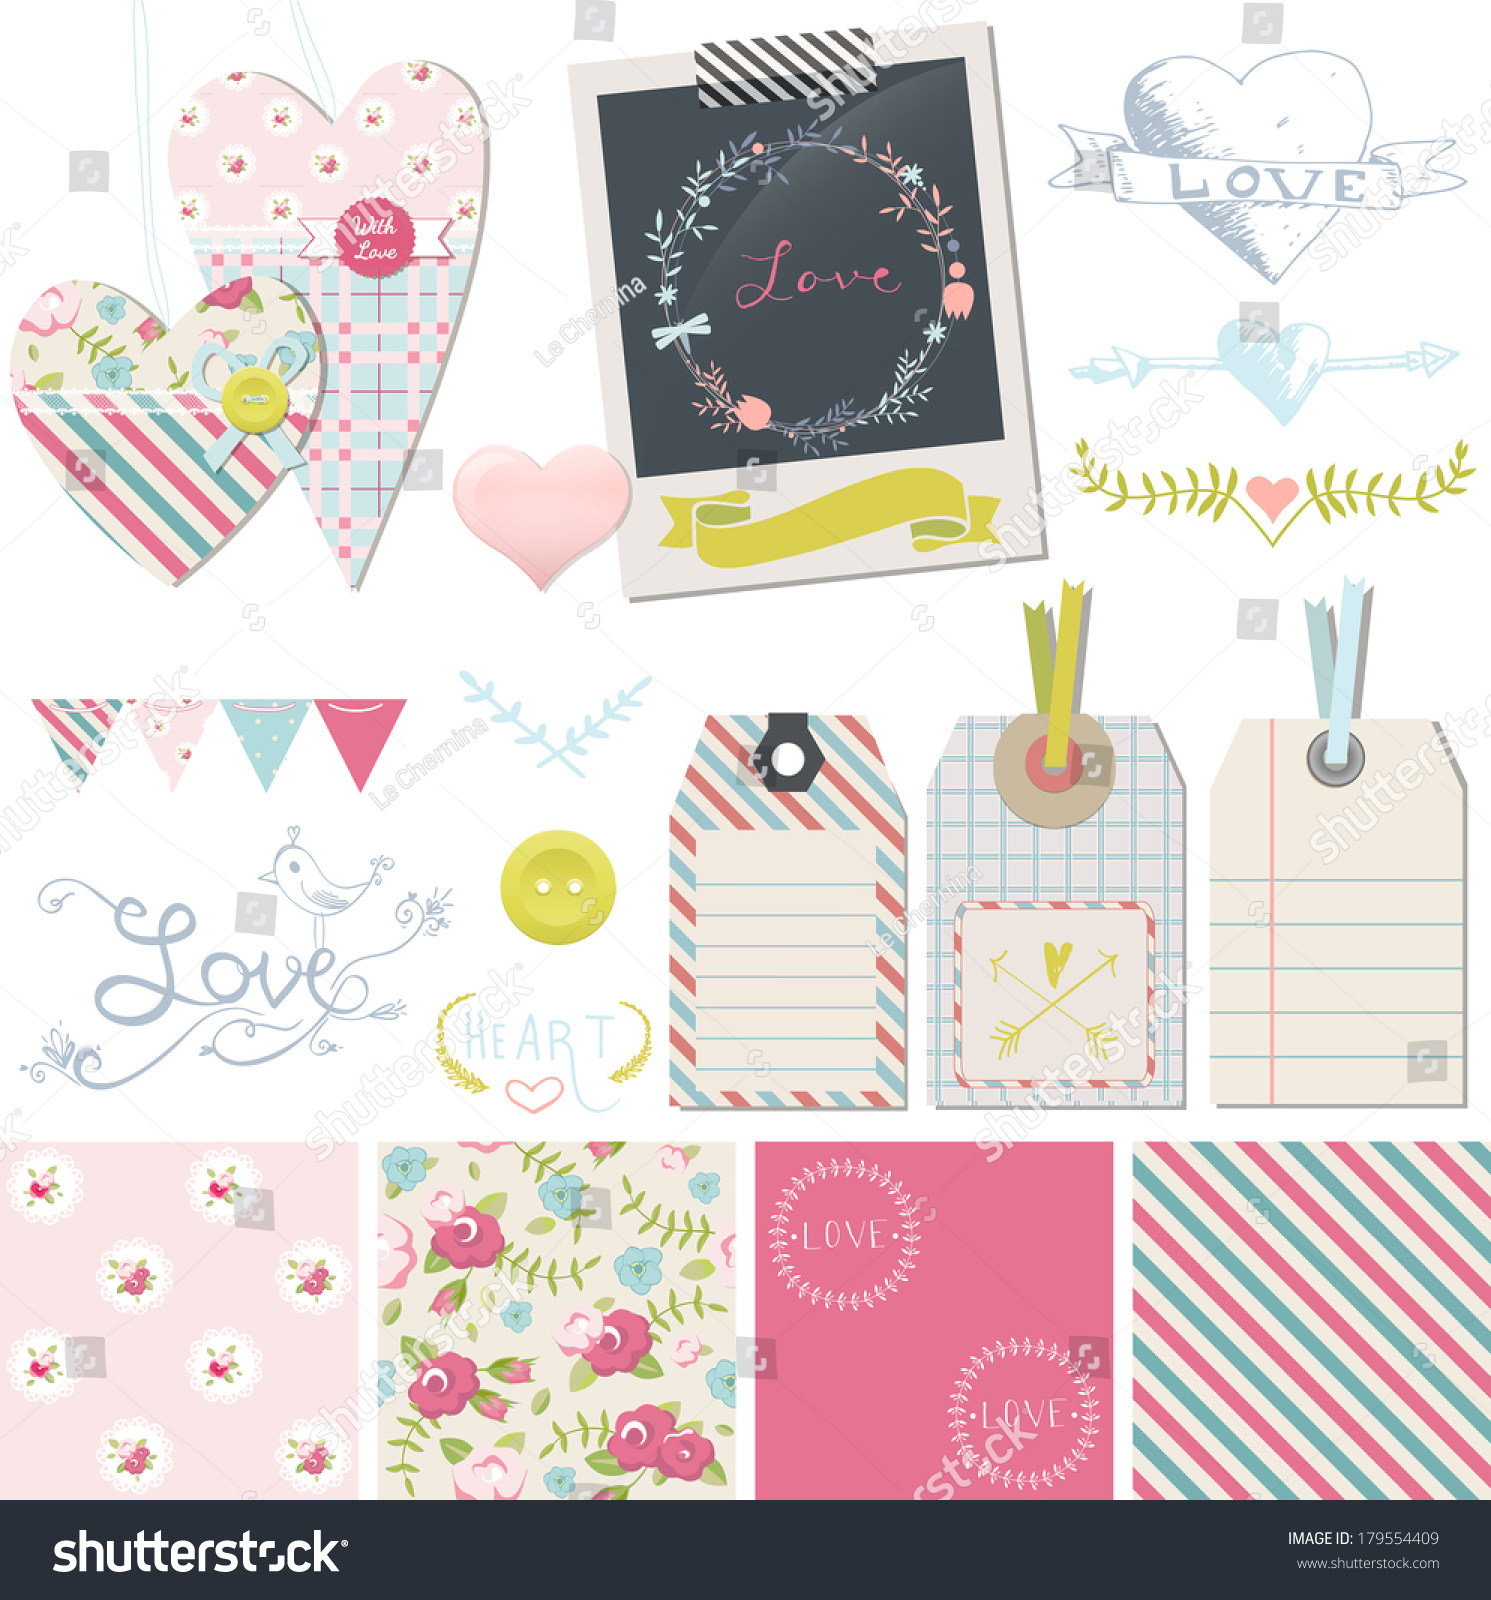 Wedding Love Romance Design Elements Collection Stock